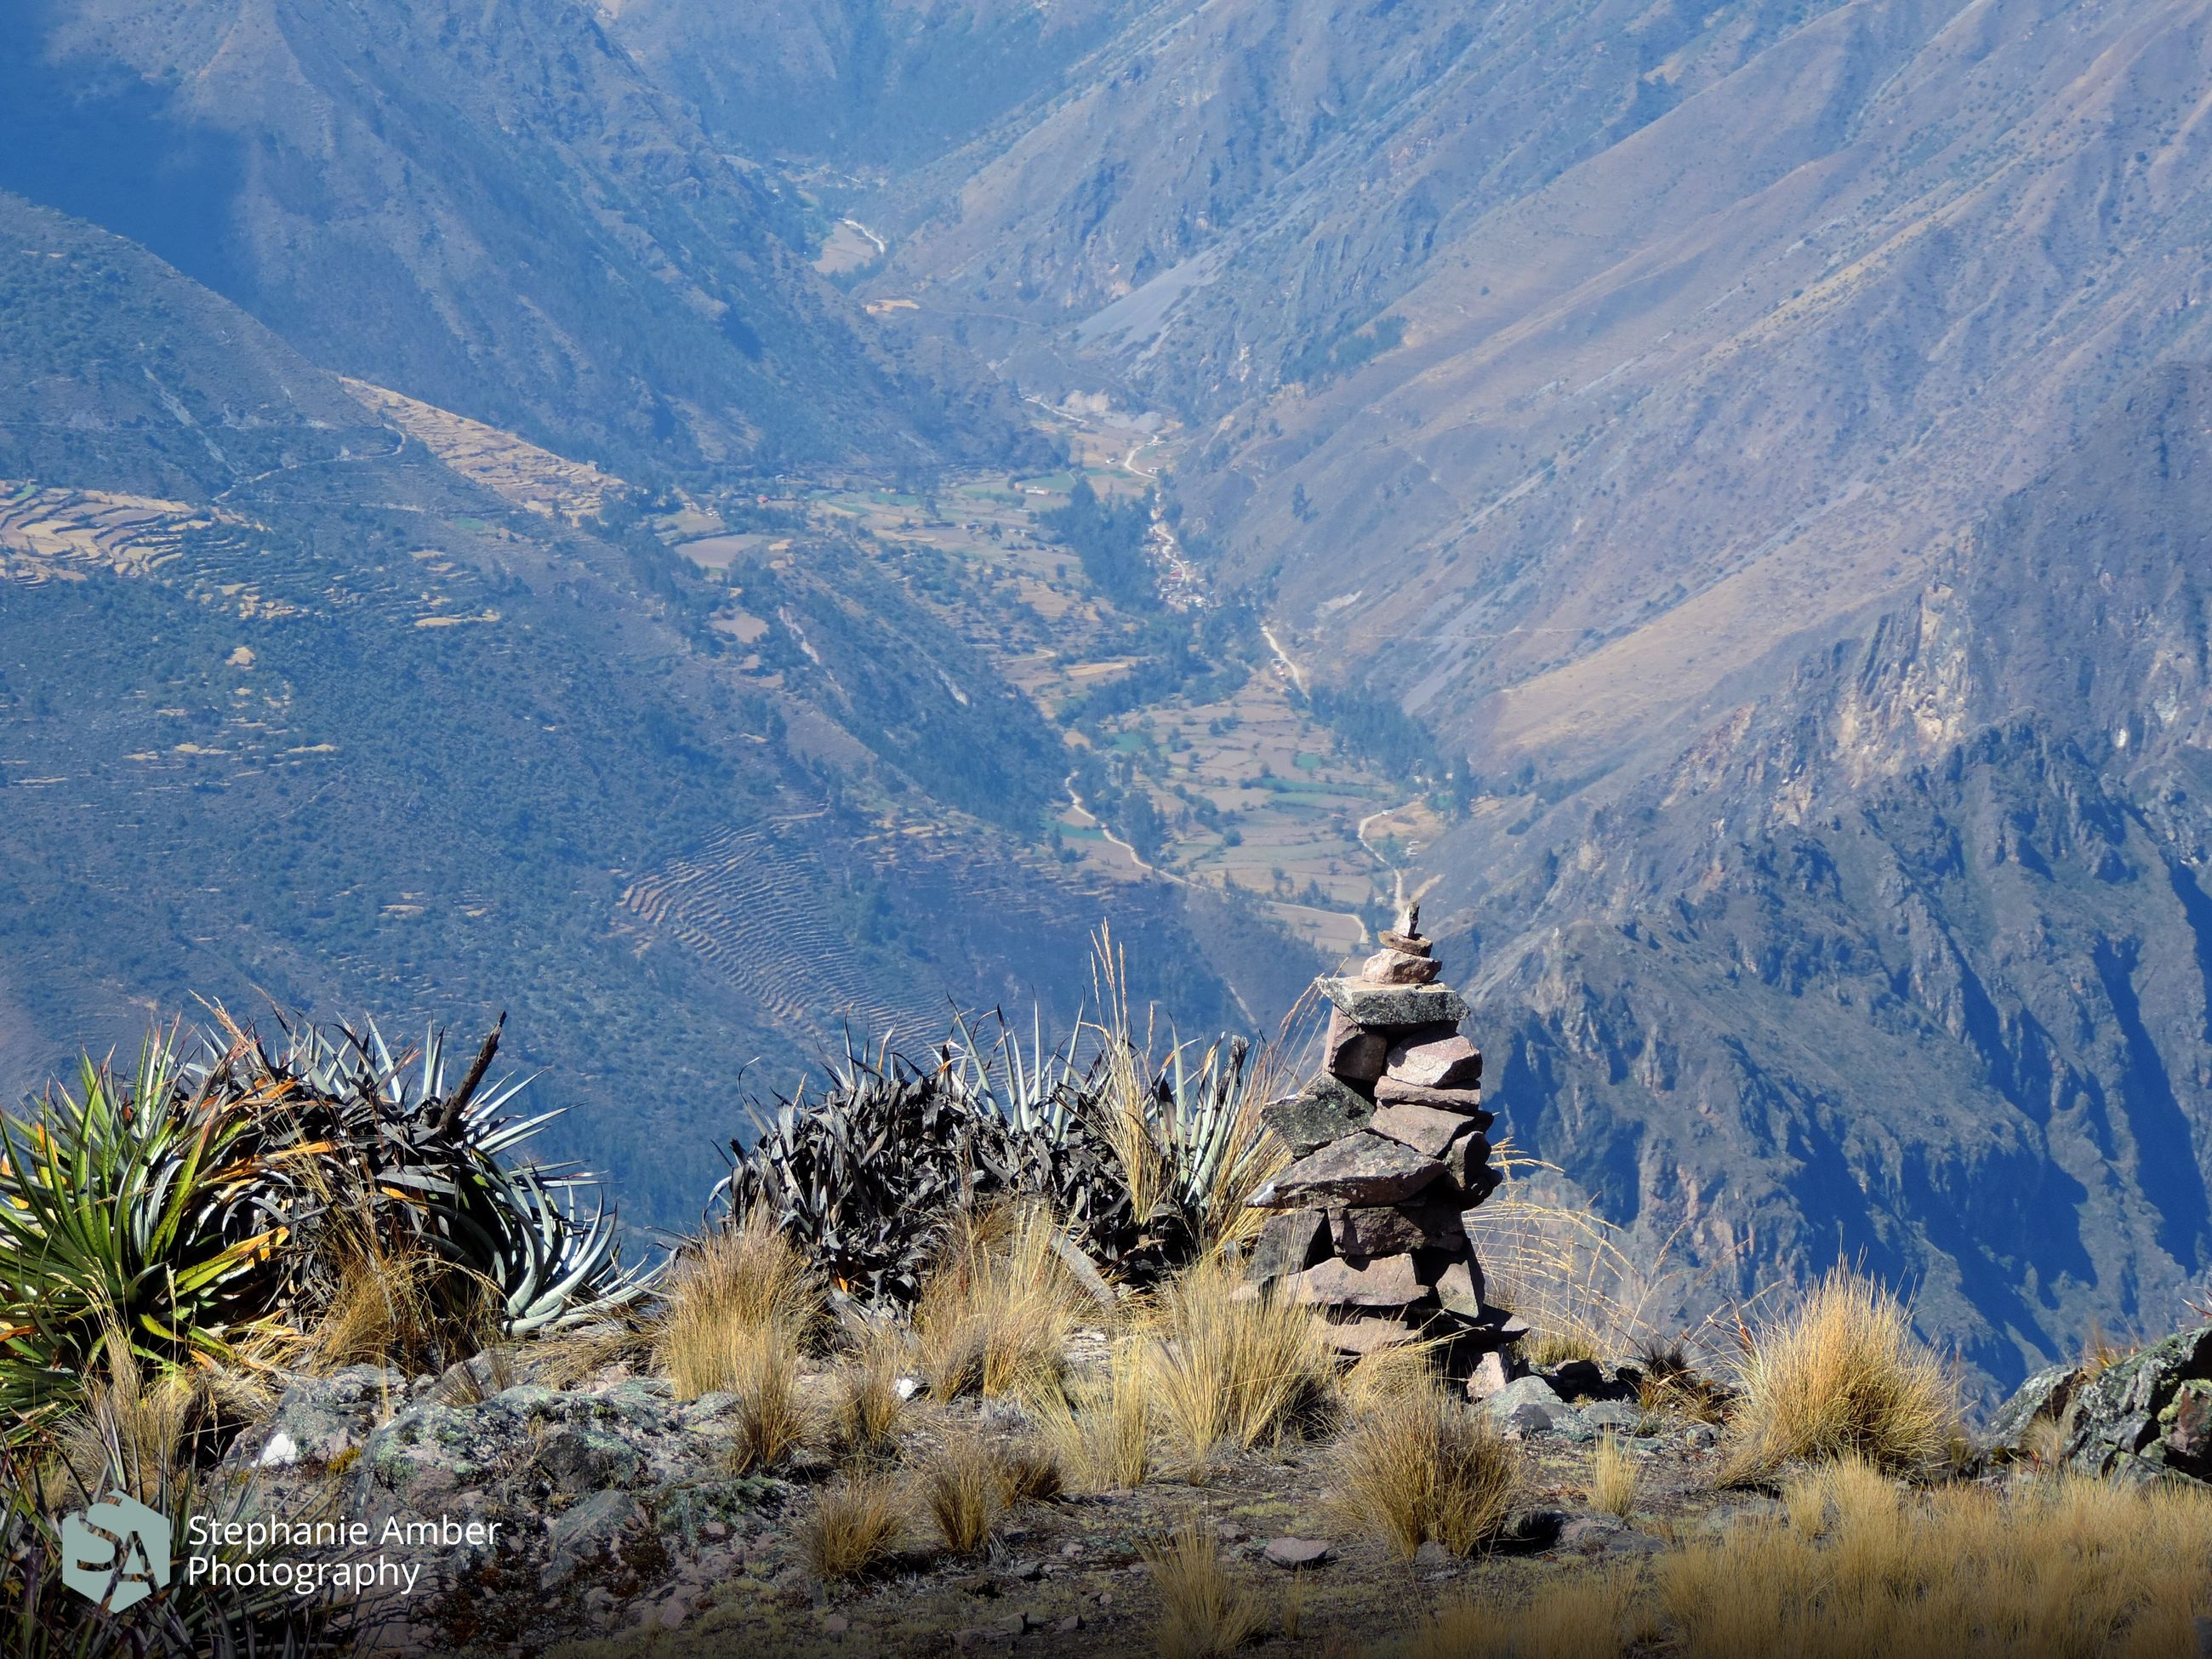 mountain, scenics - nature, plant, tranquil scene, environment, beauty in nature, landscape, nature, tranquility, day, mountain range, non-urban scene, no people, tree, land, idyllic, remote, high angle view, outdoors, travel destinations, arid climate